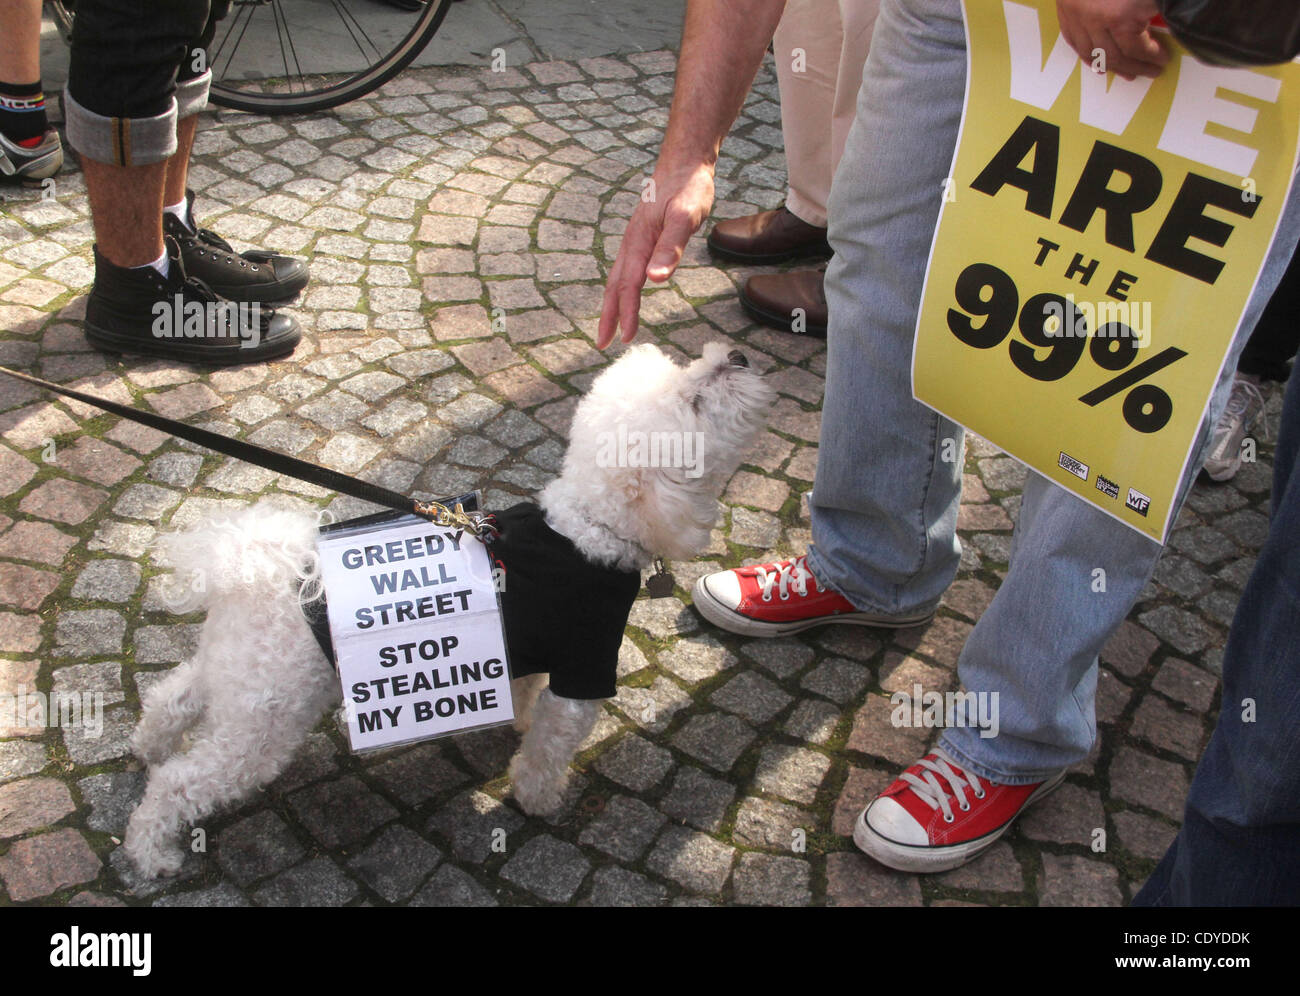 Oct. 11, 2011 - New York, New York, U.S. - 'Occupy Wall Street' Protester pets a dog with a protest sign - Stock Image